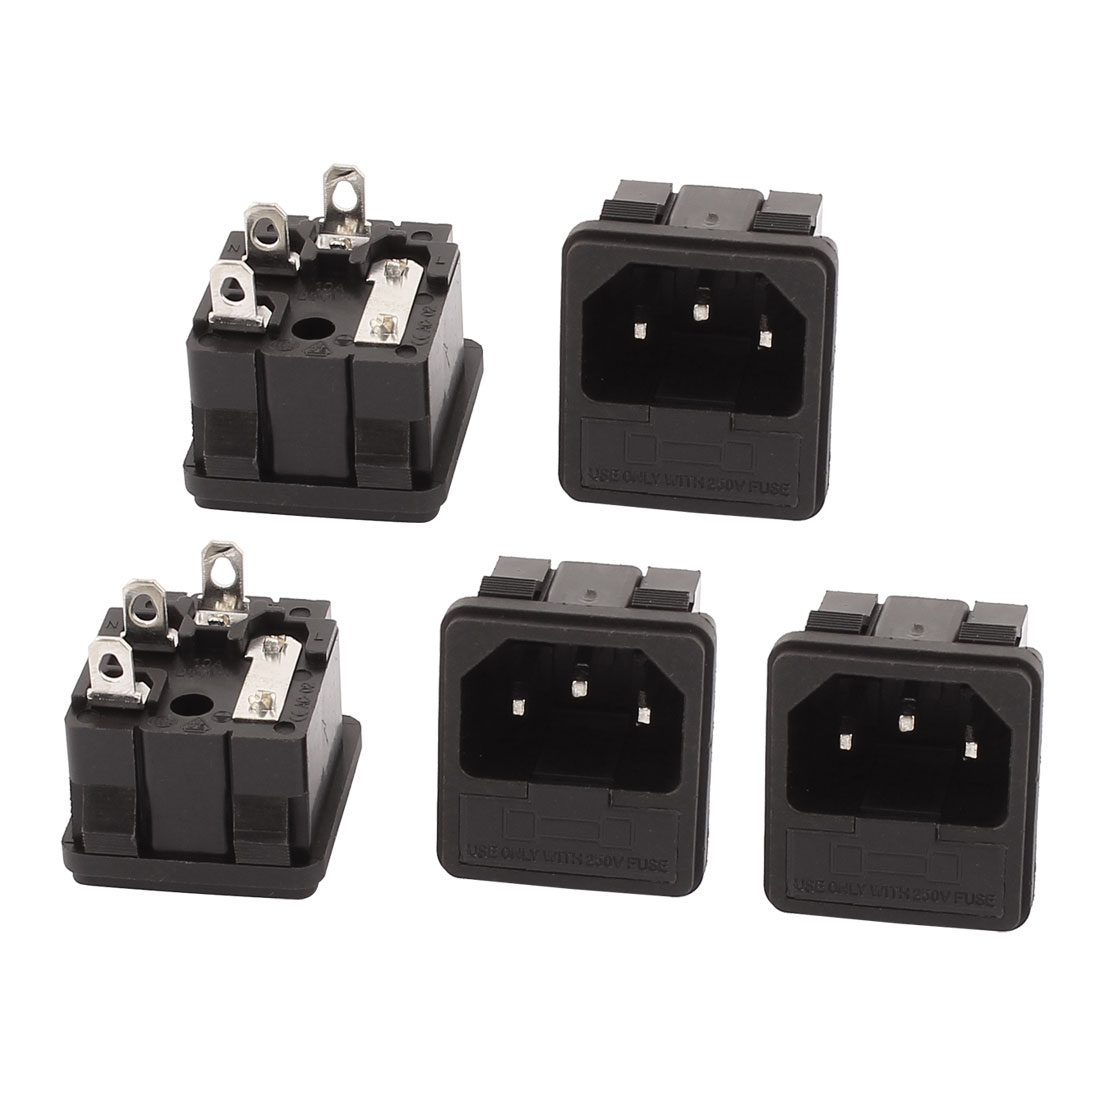 5 Pcs AC250V 10A 3 Terminals IEC320 C14 Male Inlet Power Panel Connector Socket